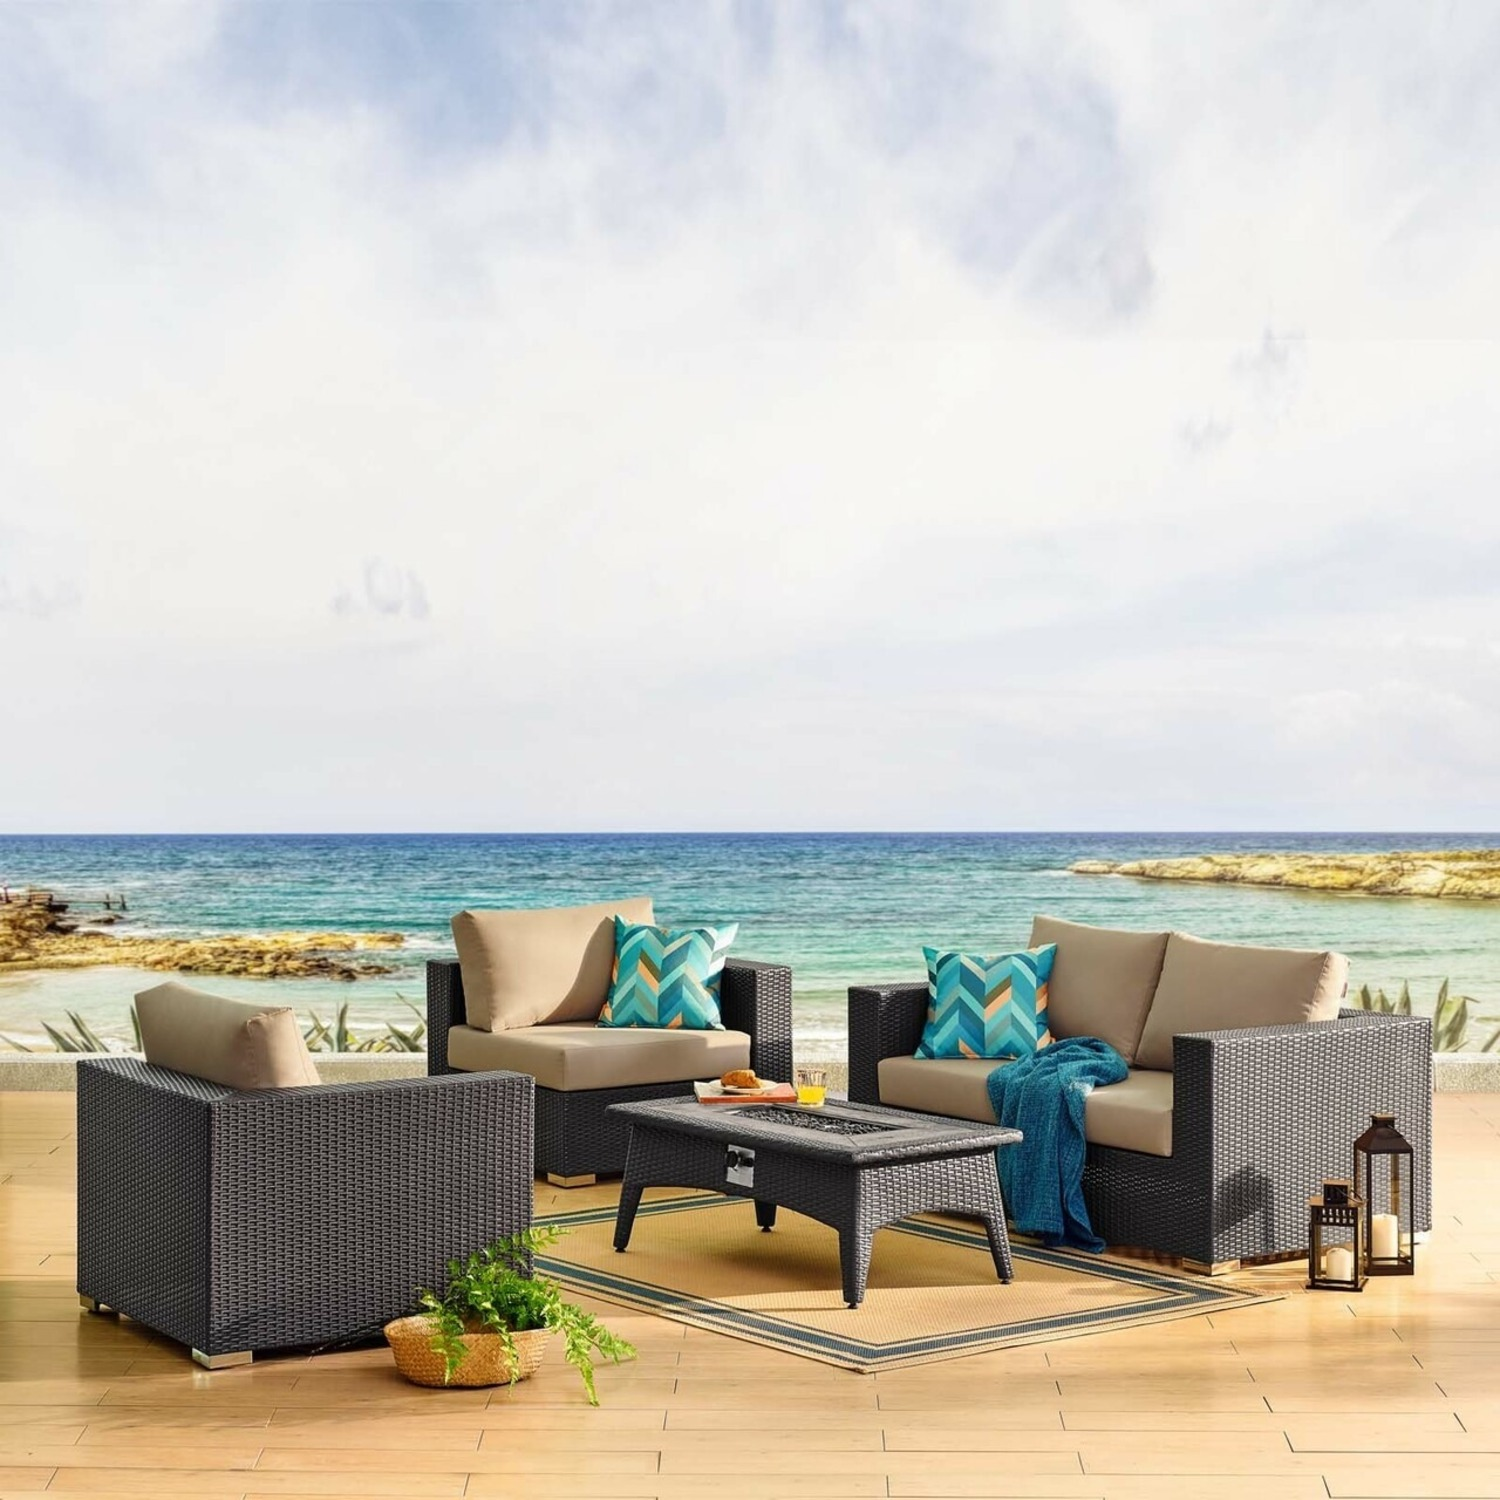 5-Piece Outdoor Sectional In Mocha Fabric Finish - image-7